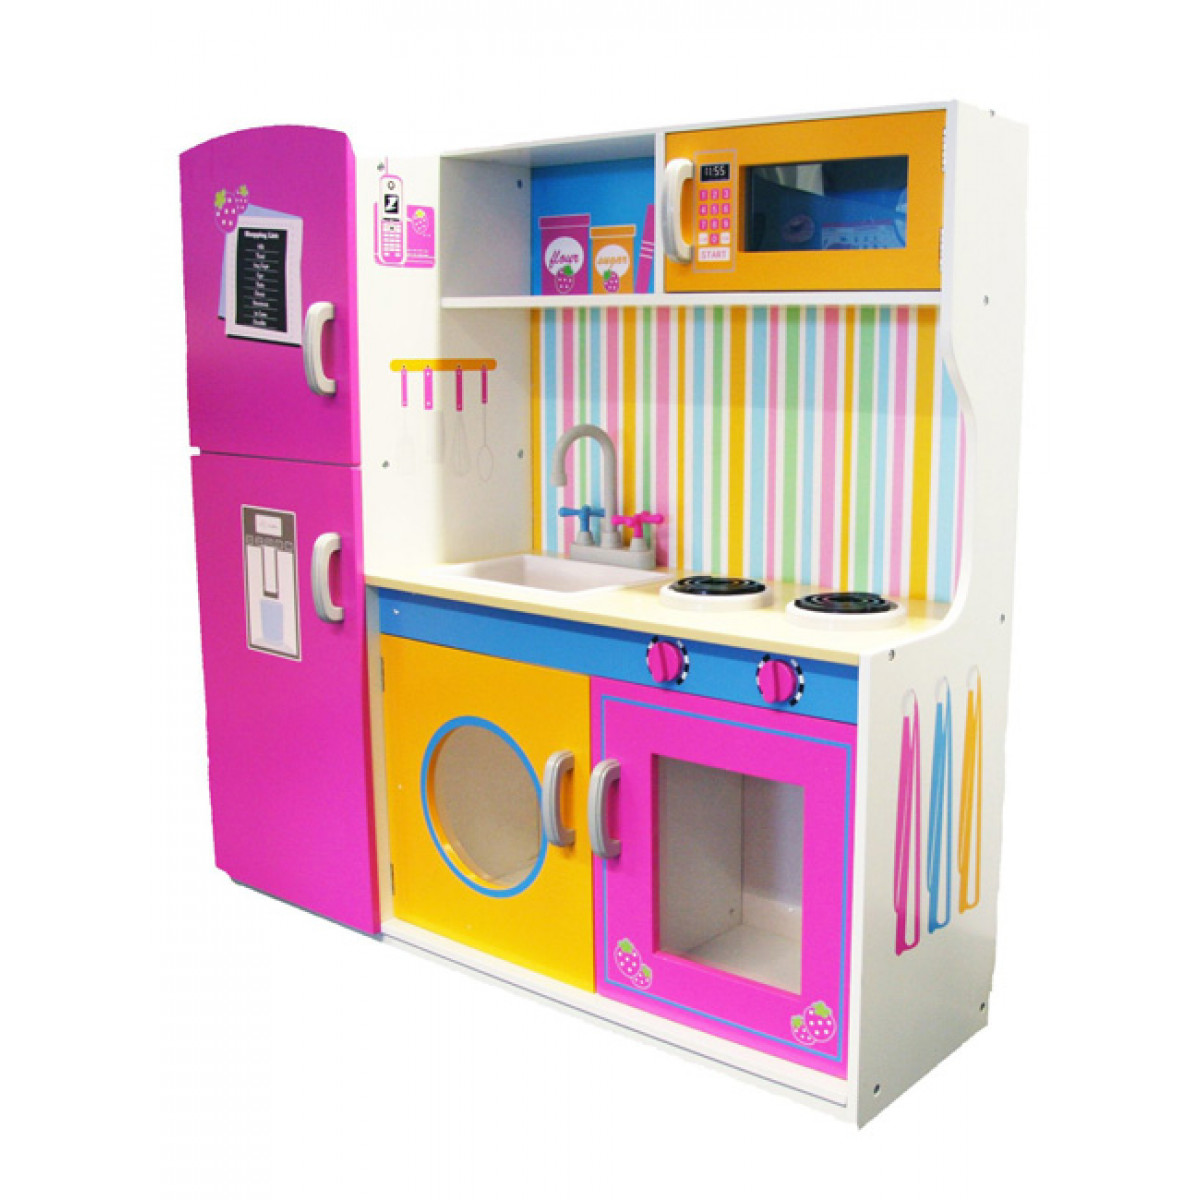 Cucina Peppa Pig Toys Big Wooden Kitchen With Fridge